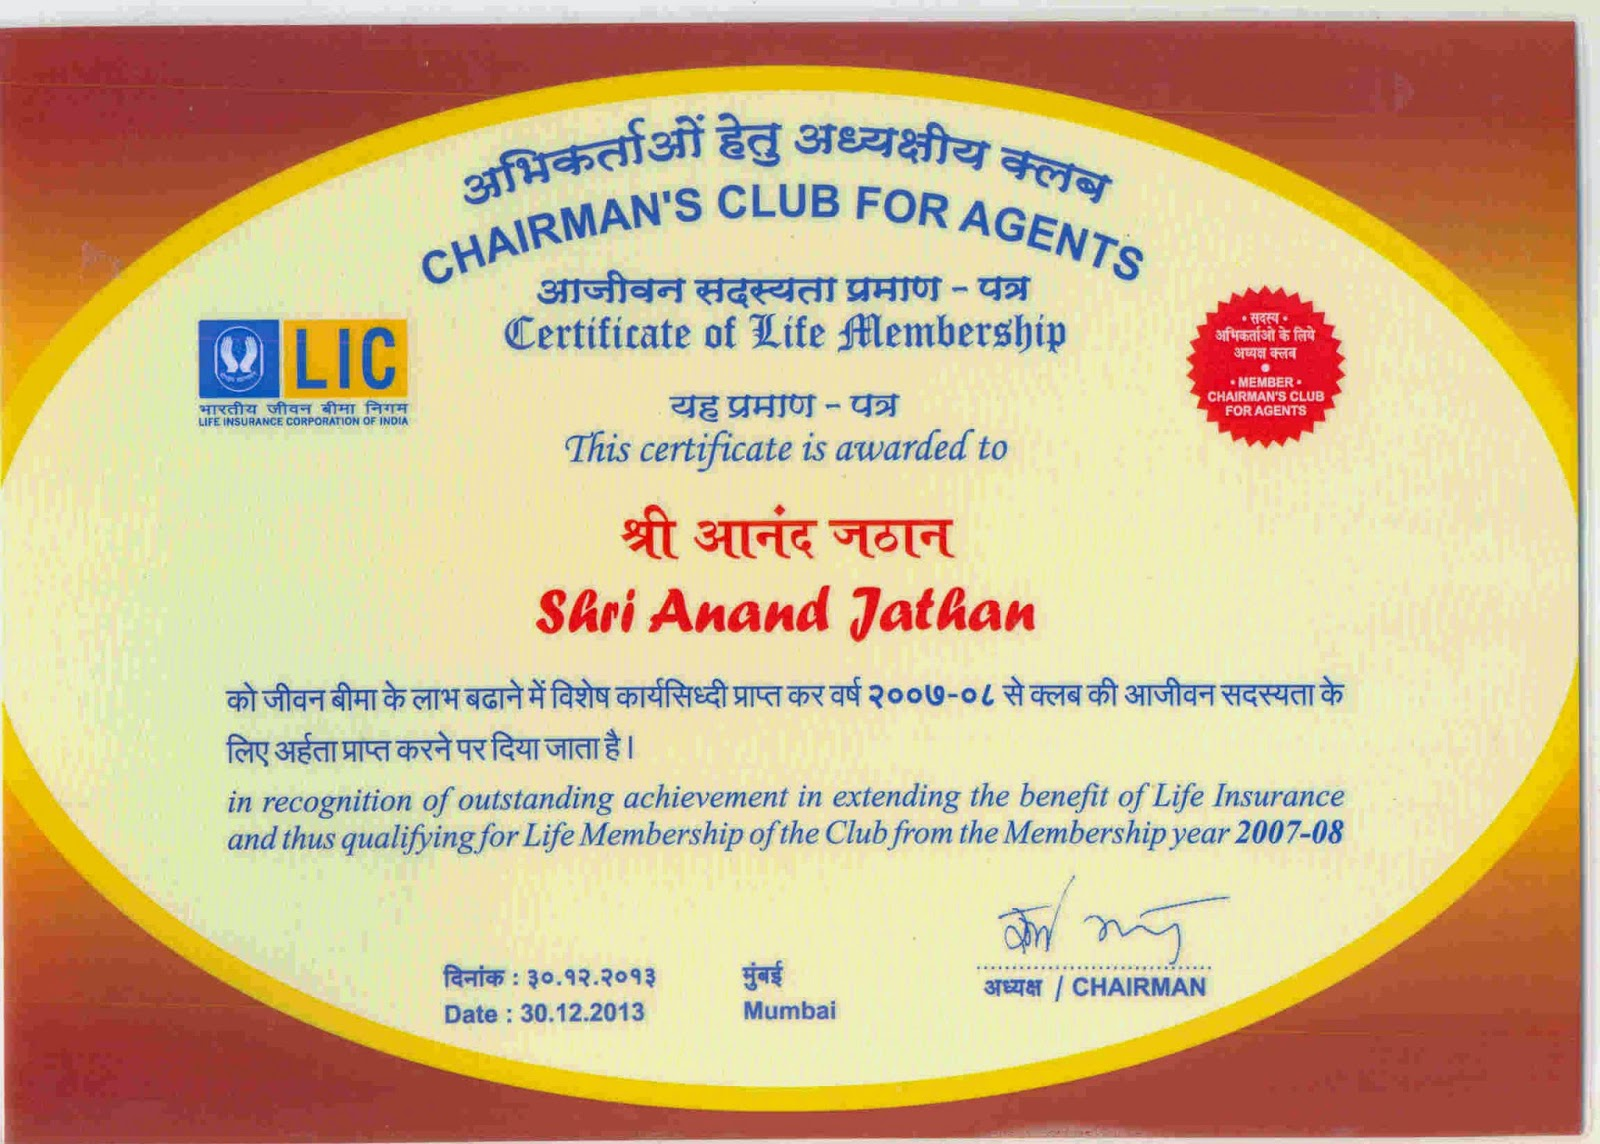 InsureRelaxInfo: LIFE membership of CHAIRMAN'S CLUB FOR AGENTS